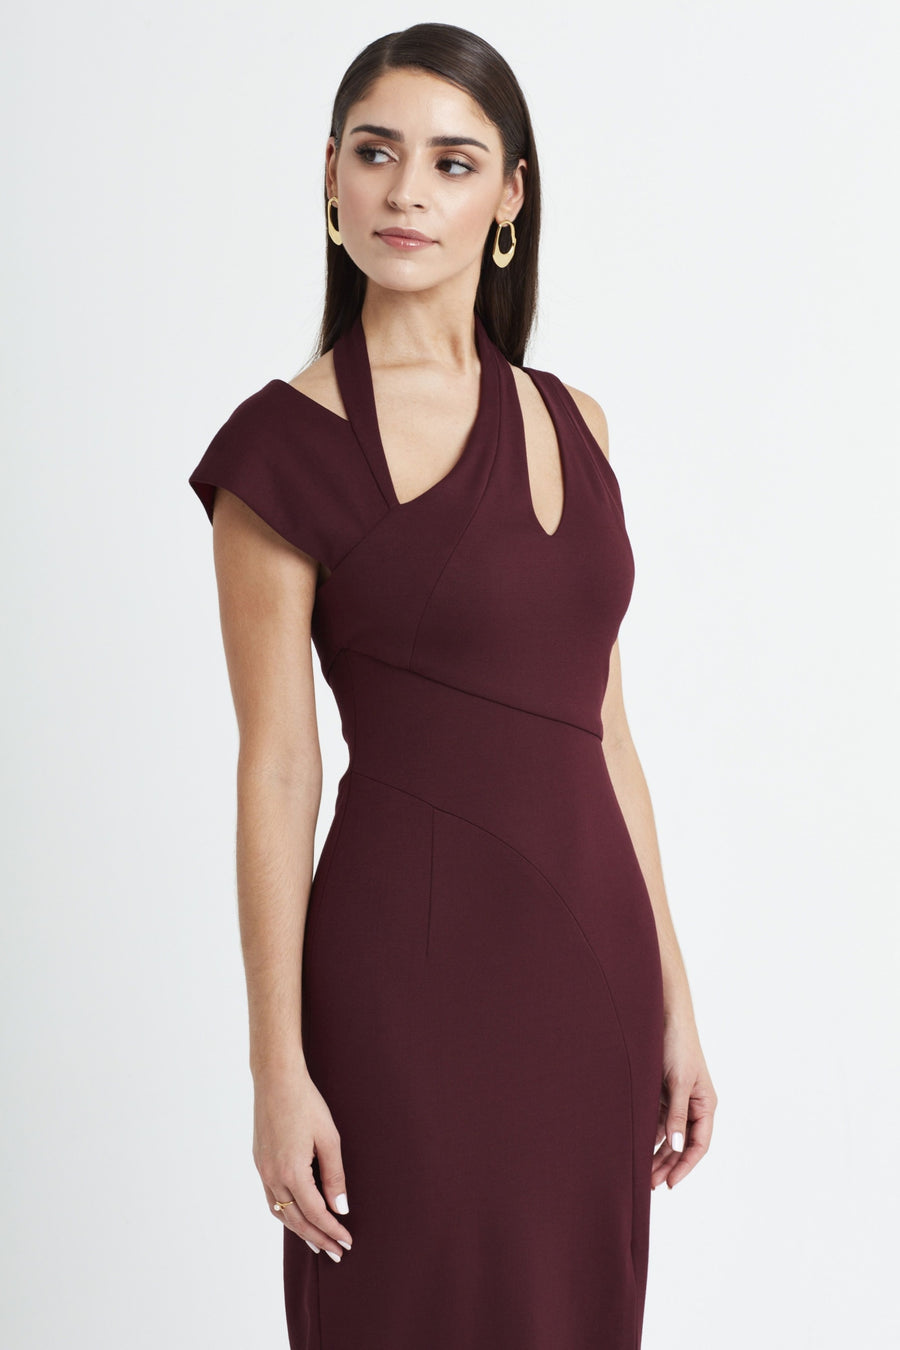 Curvature Dress in Merlot